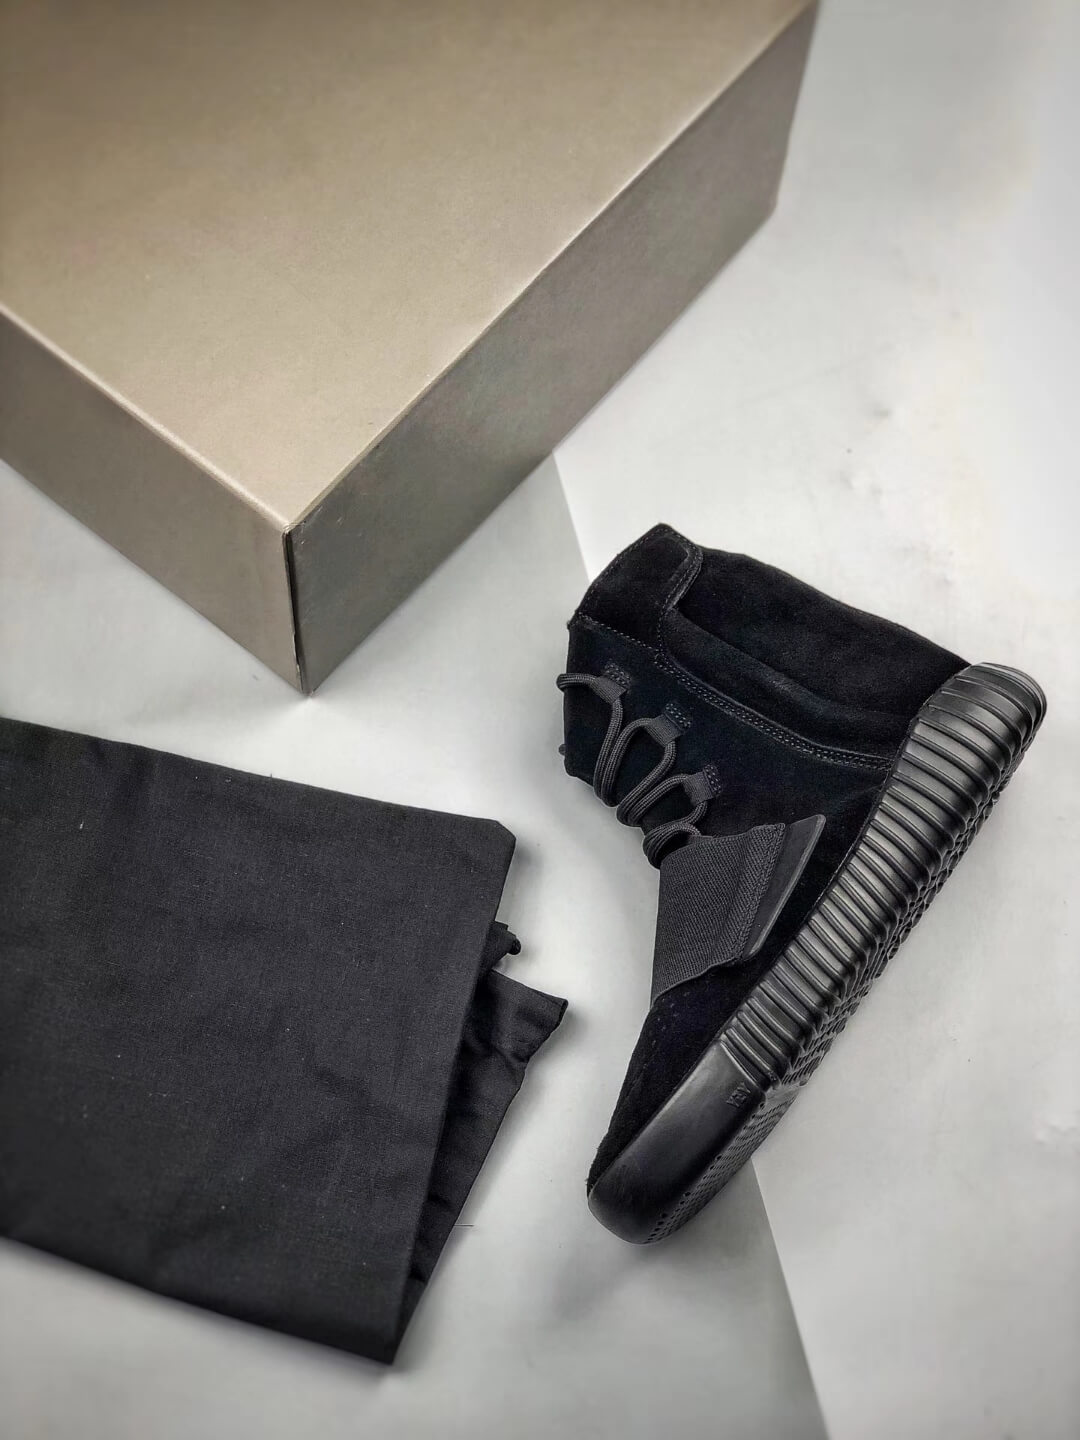 The Adidas Yeezy Boost 750 Triple Black Suede Quality Rep Sneaker 09